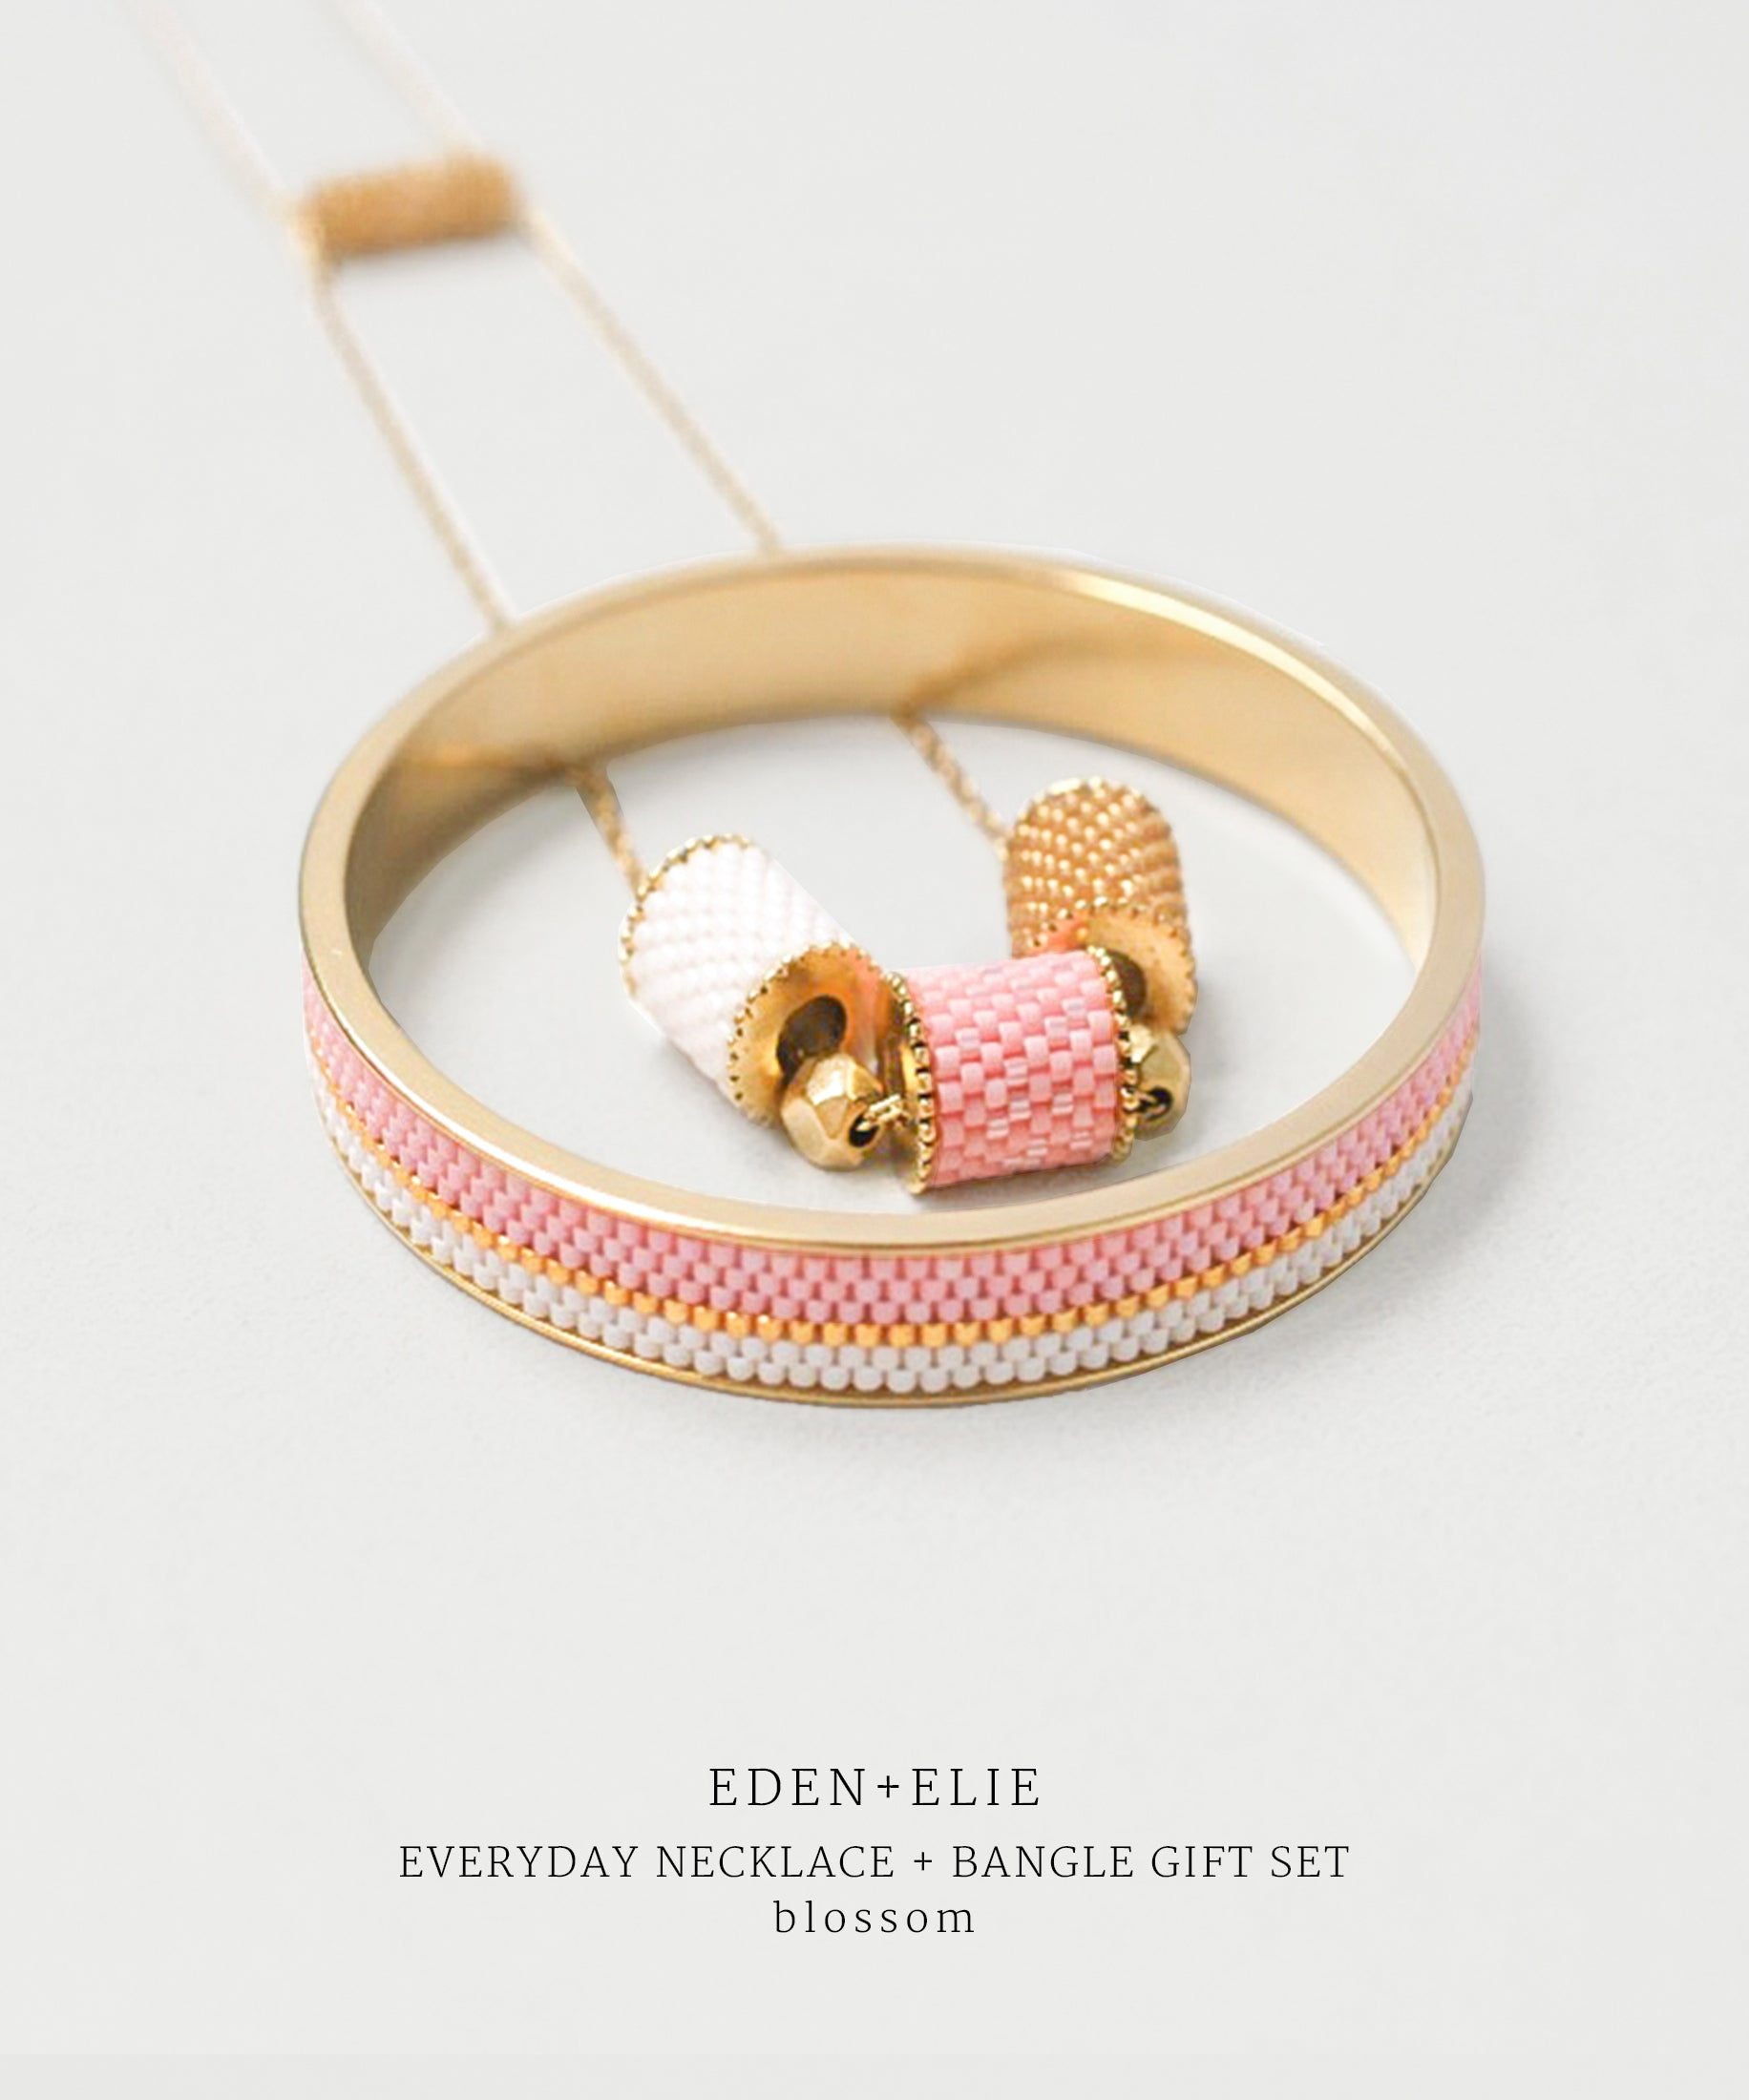 EDEN + ELIE Everyday adjustable length necklace + bangle set - blossom pink